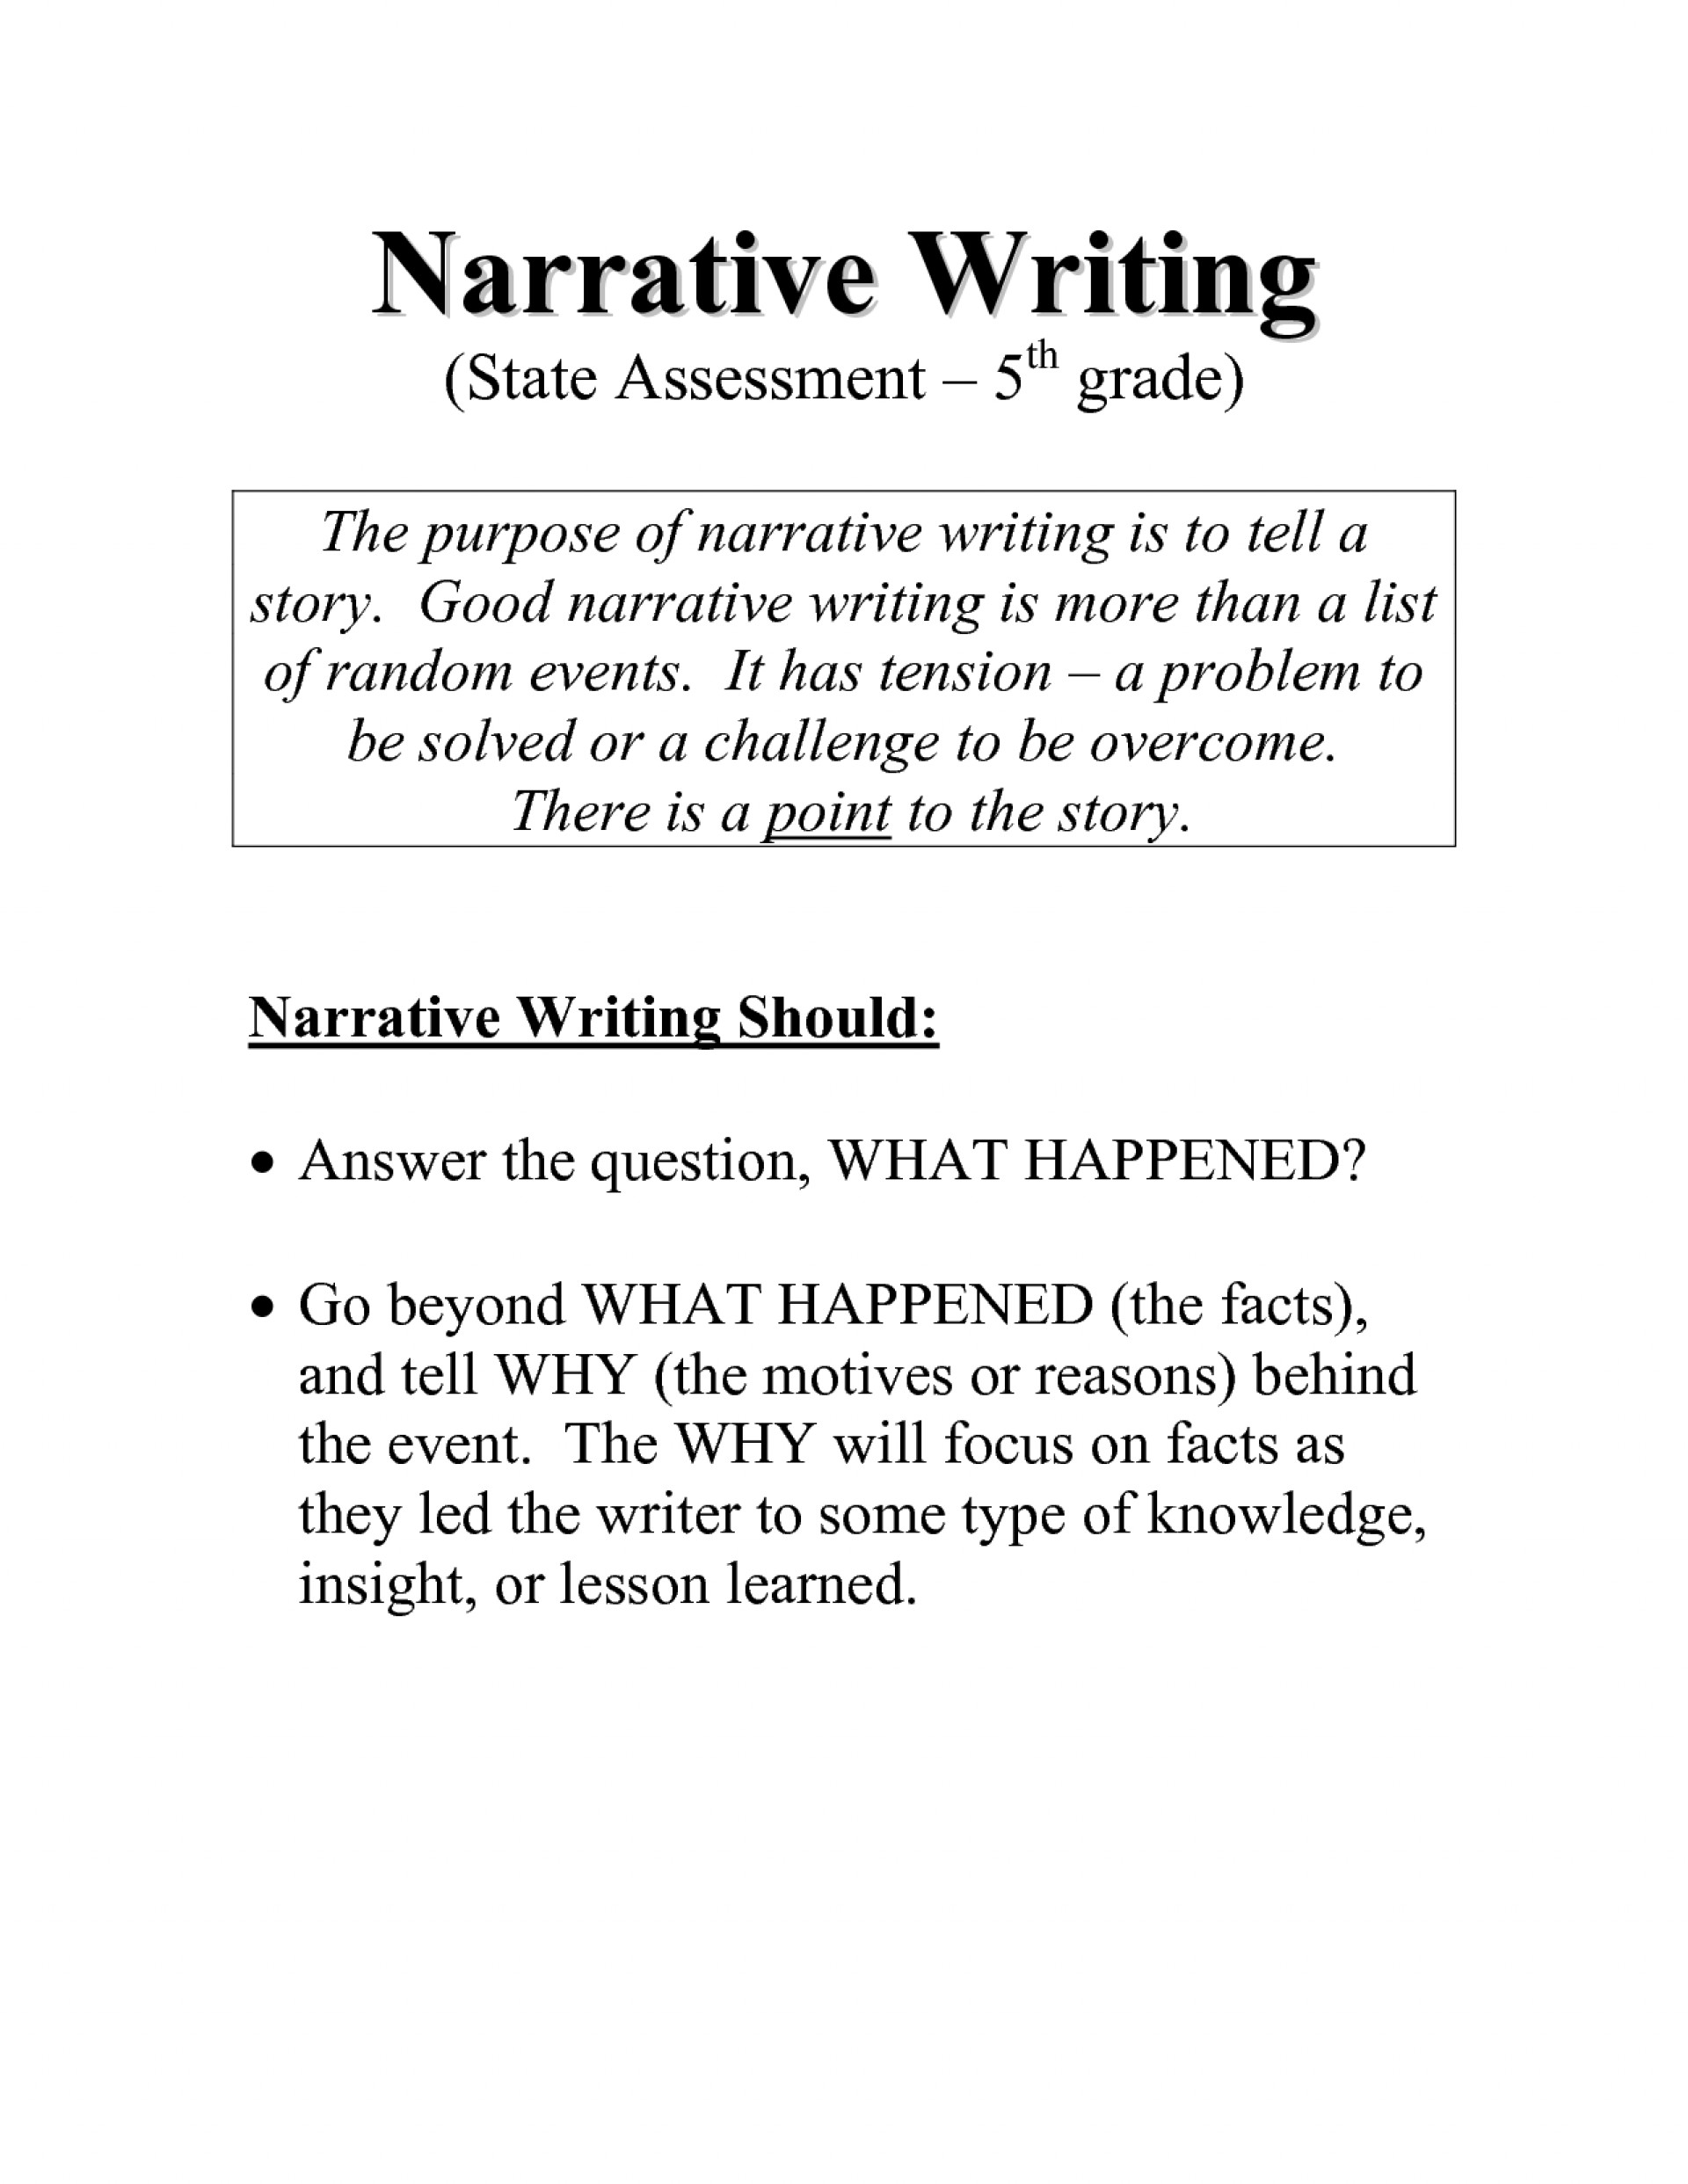 012 Essay Writing Prompts Example Formidable Narrative For Middle School 5 Paragraph 5th Grade 1920